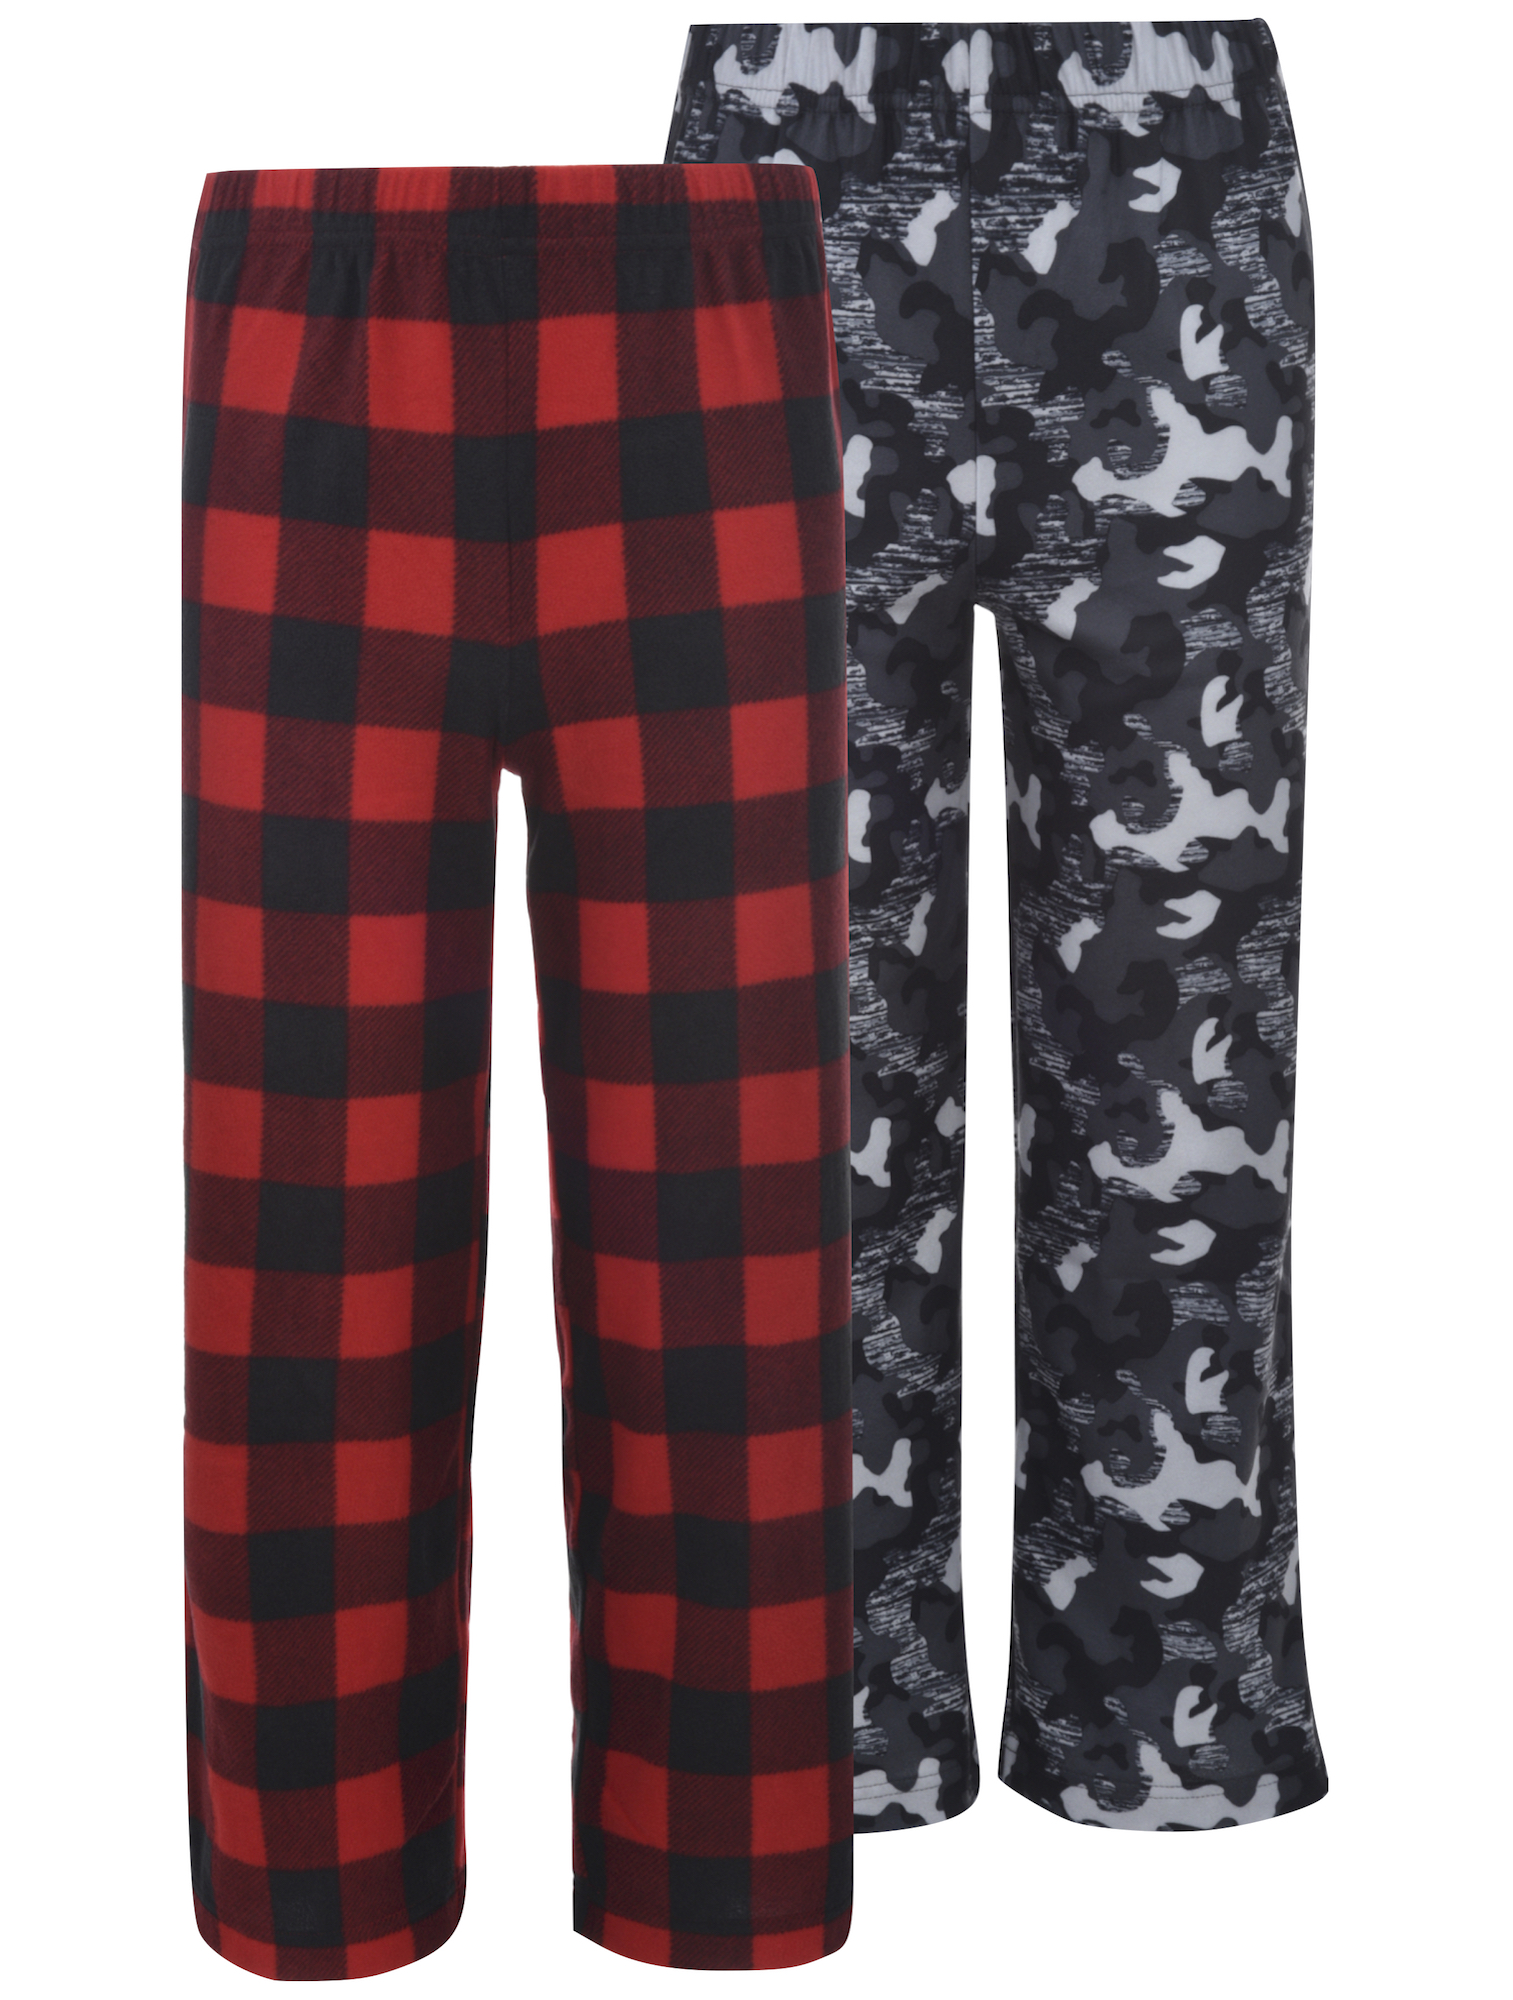 Micro Fleece Sleep Pants Value 2 Pack (Little Boy & Big Boy)